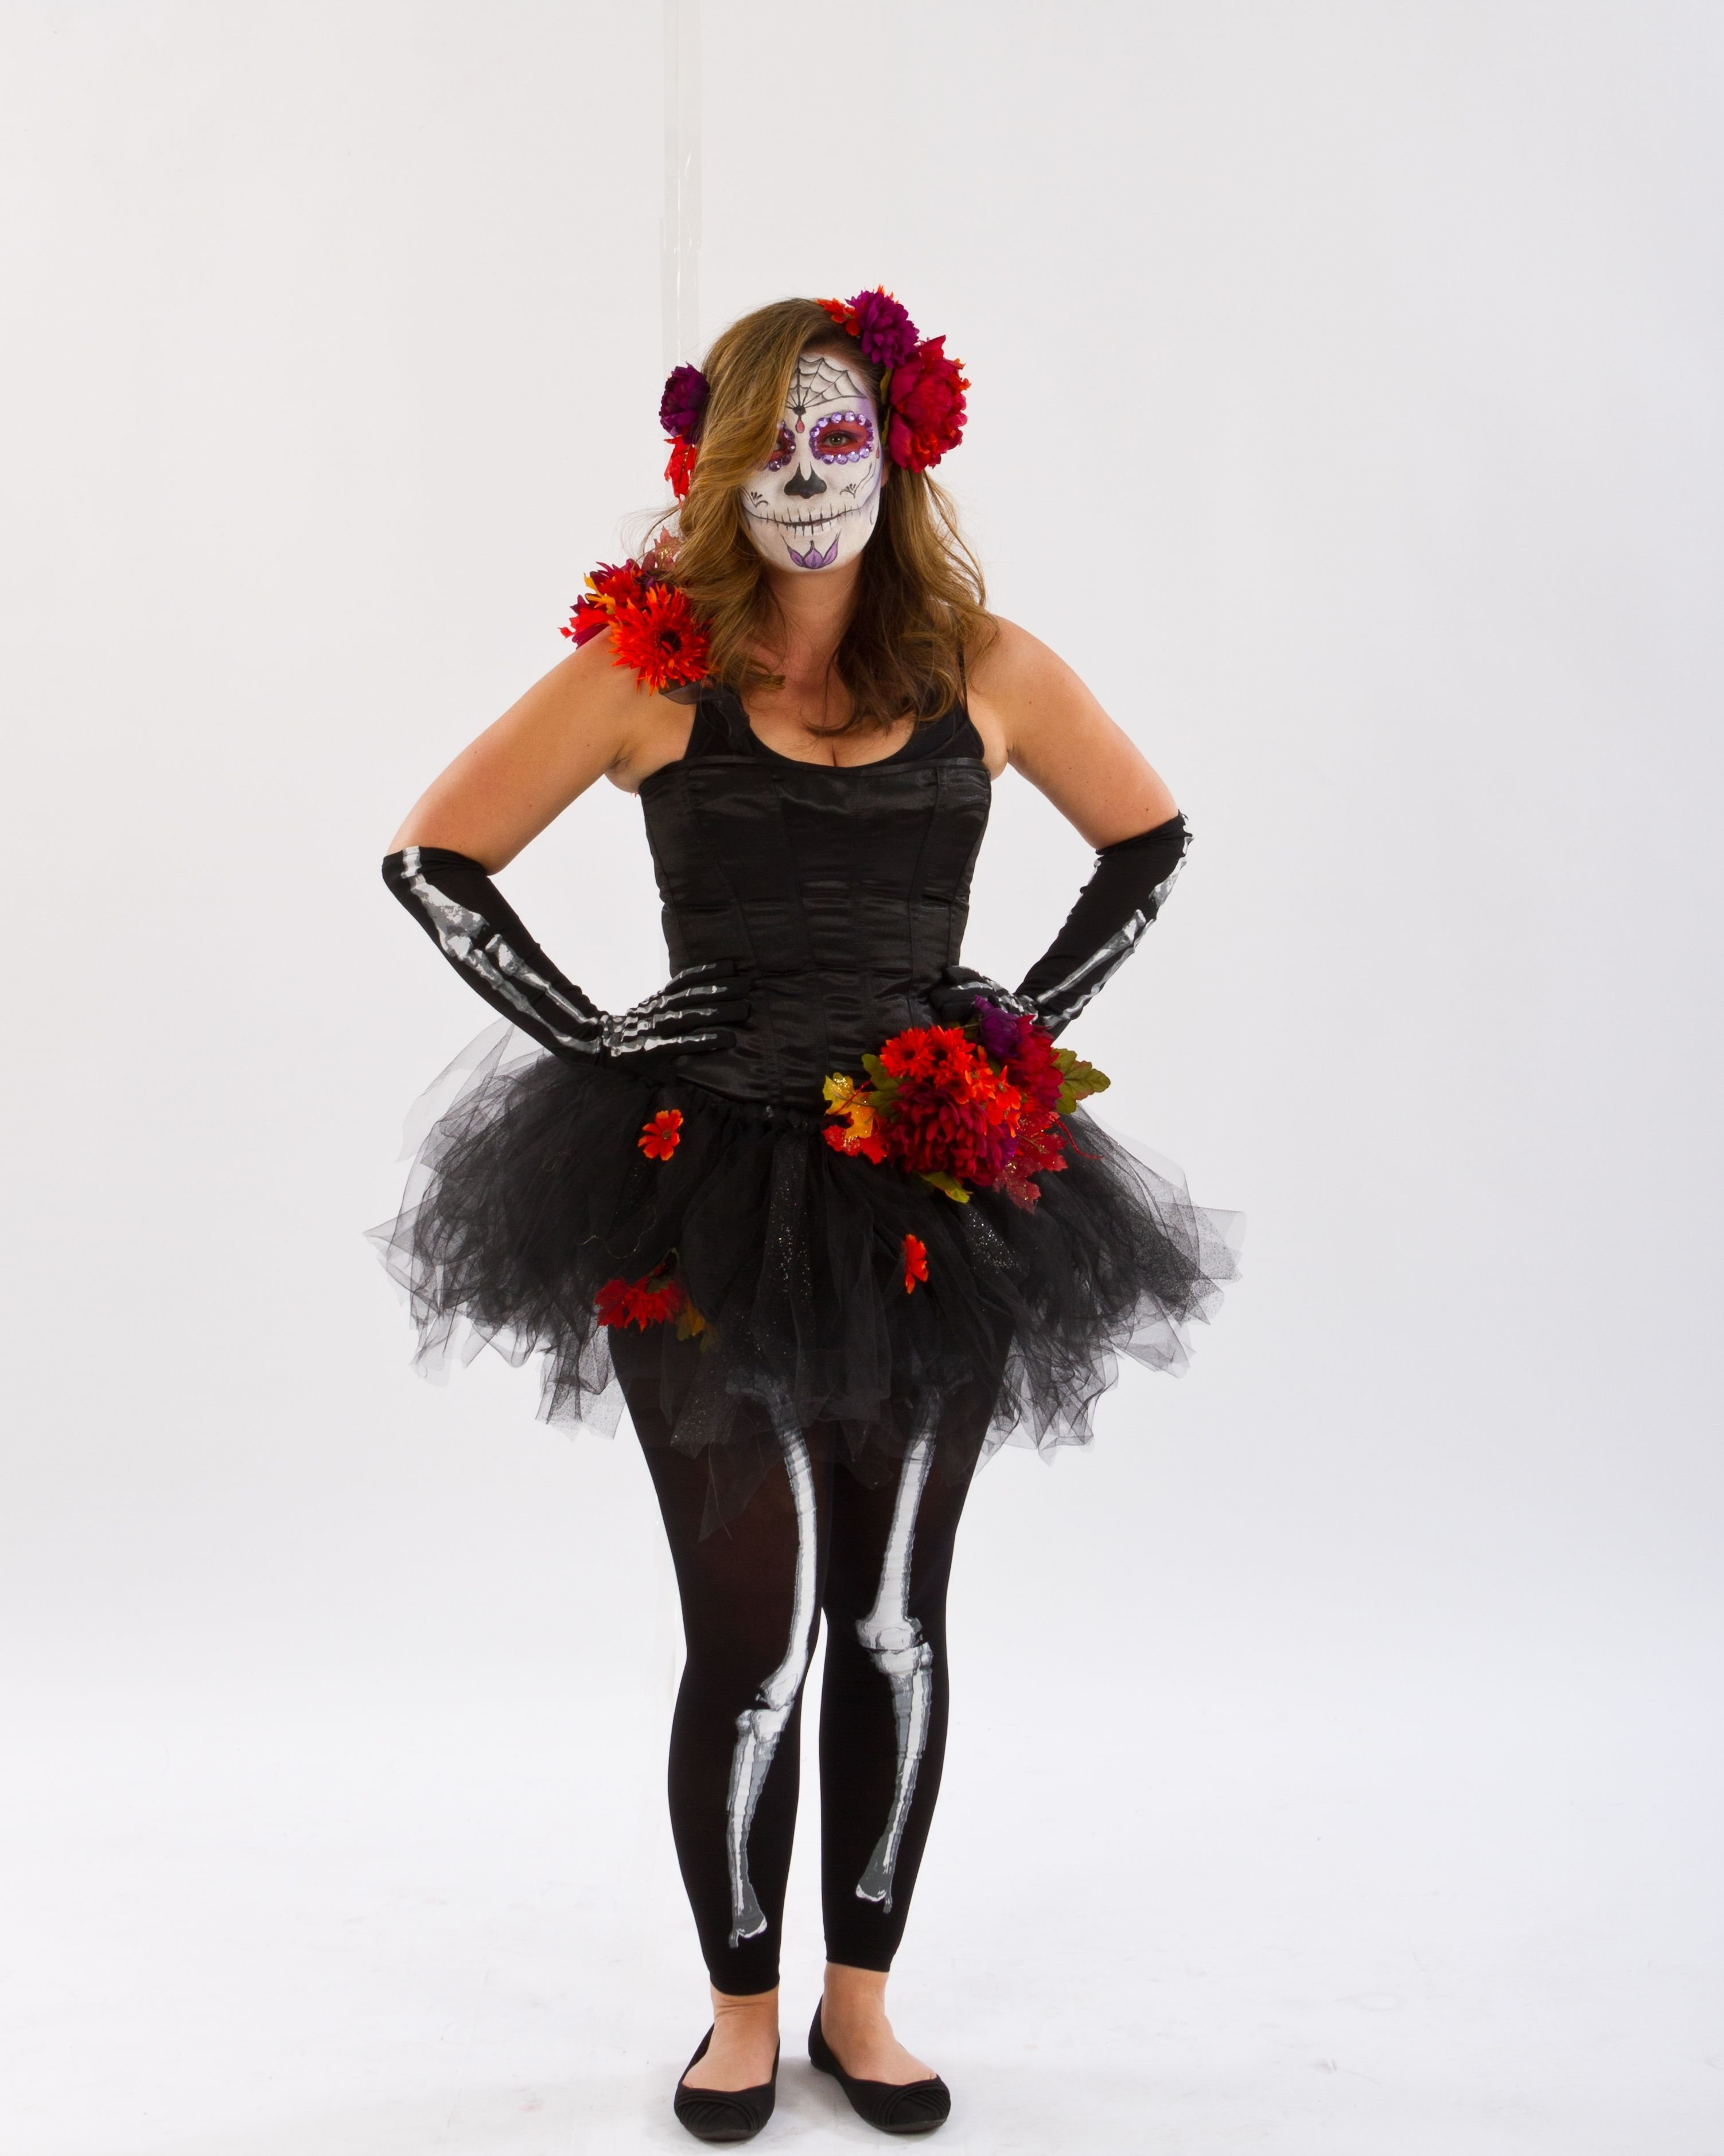 10 Great Day Of The Dead Halloween Costume Ideas to die for diy day of the dead costume starting with mix match 3 2020